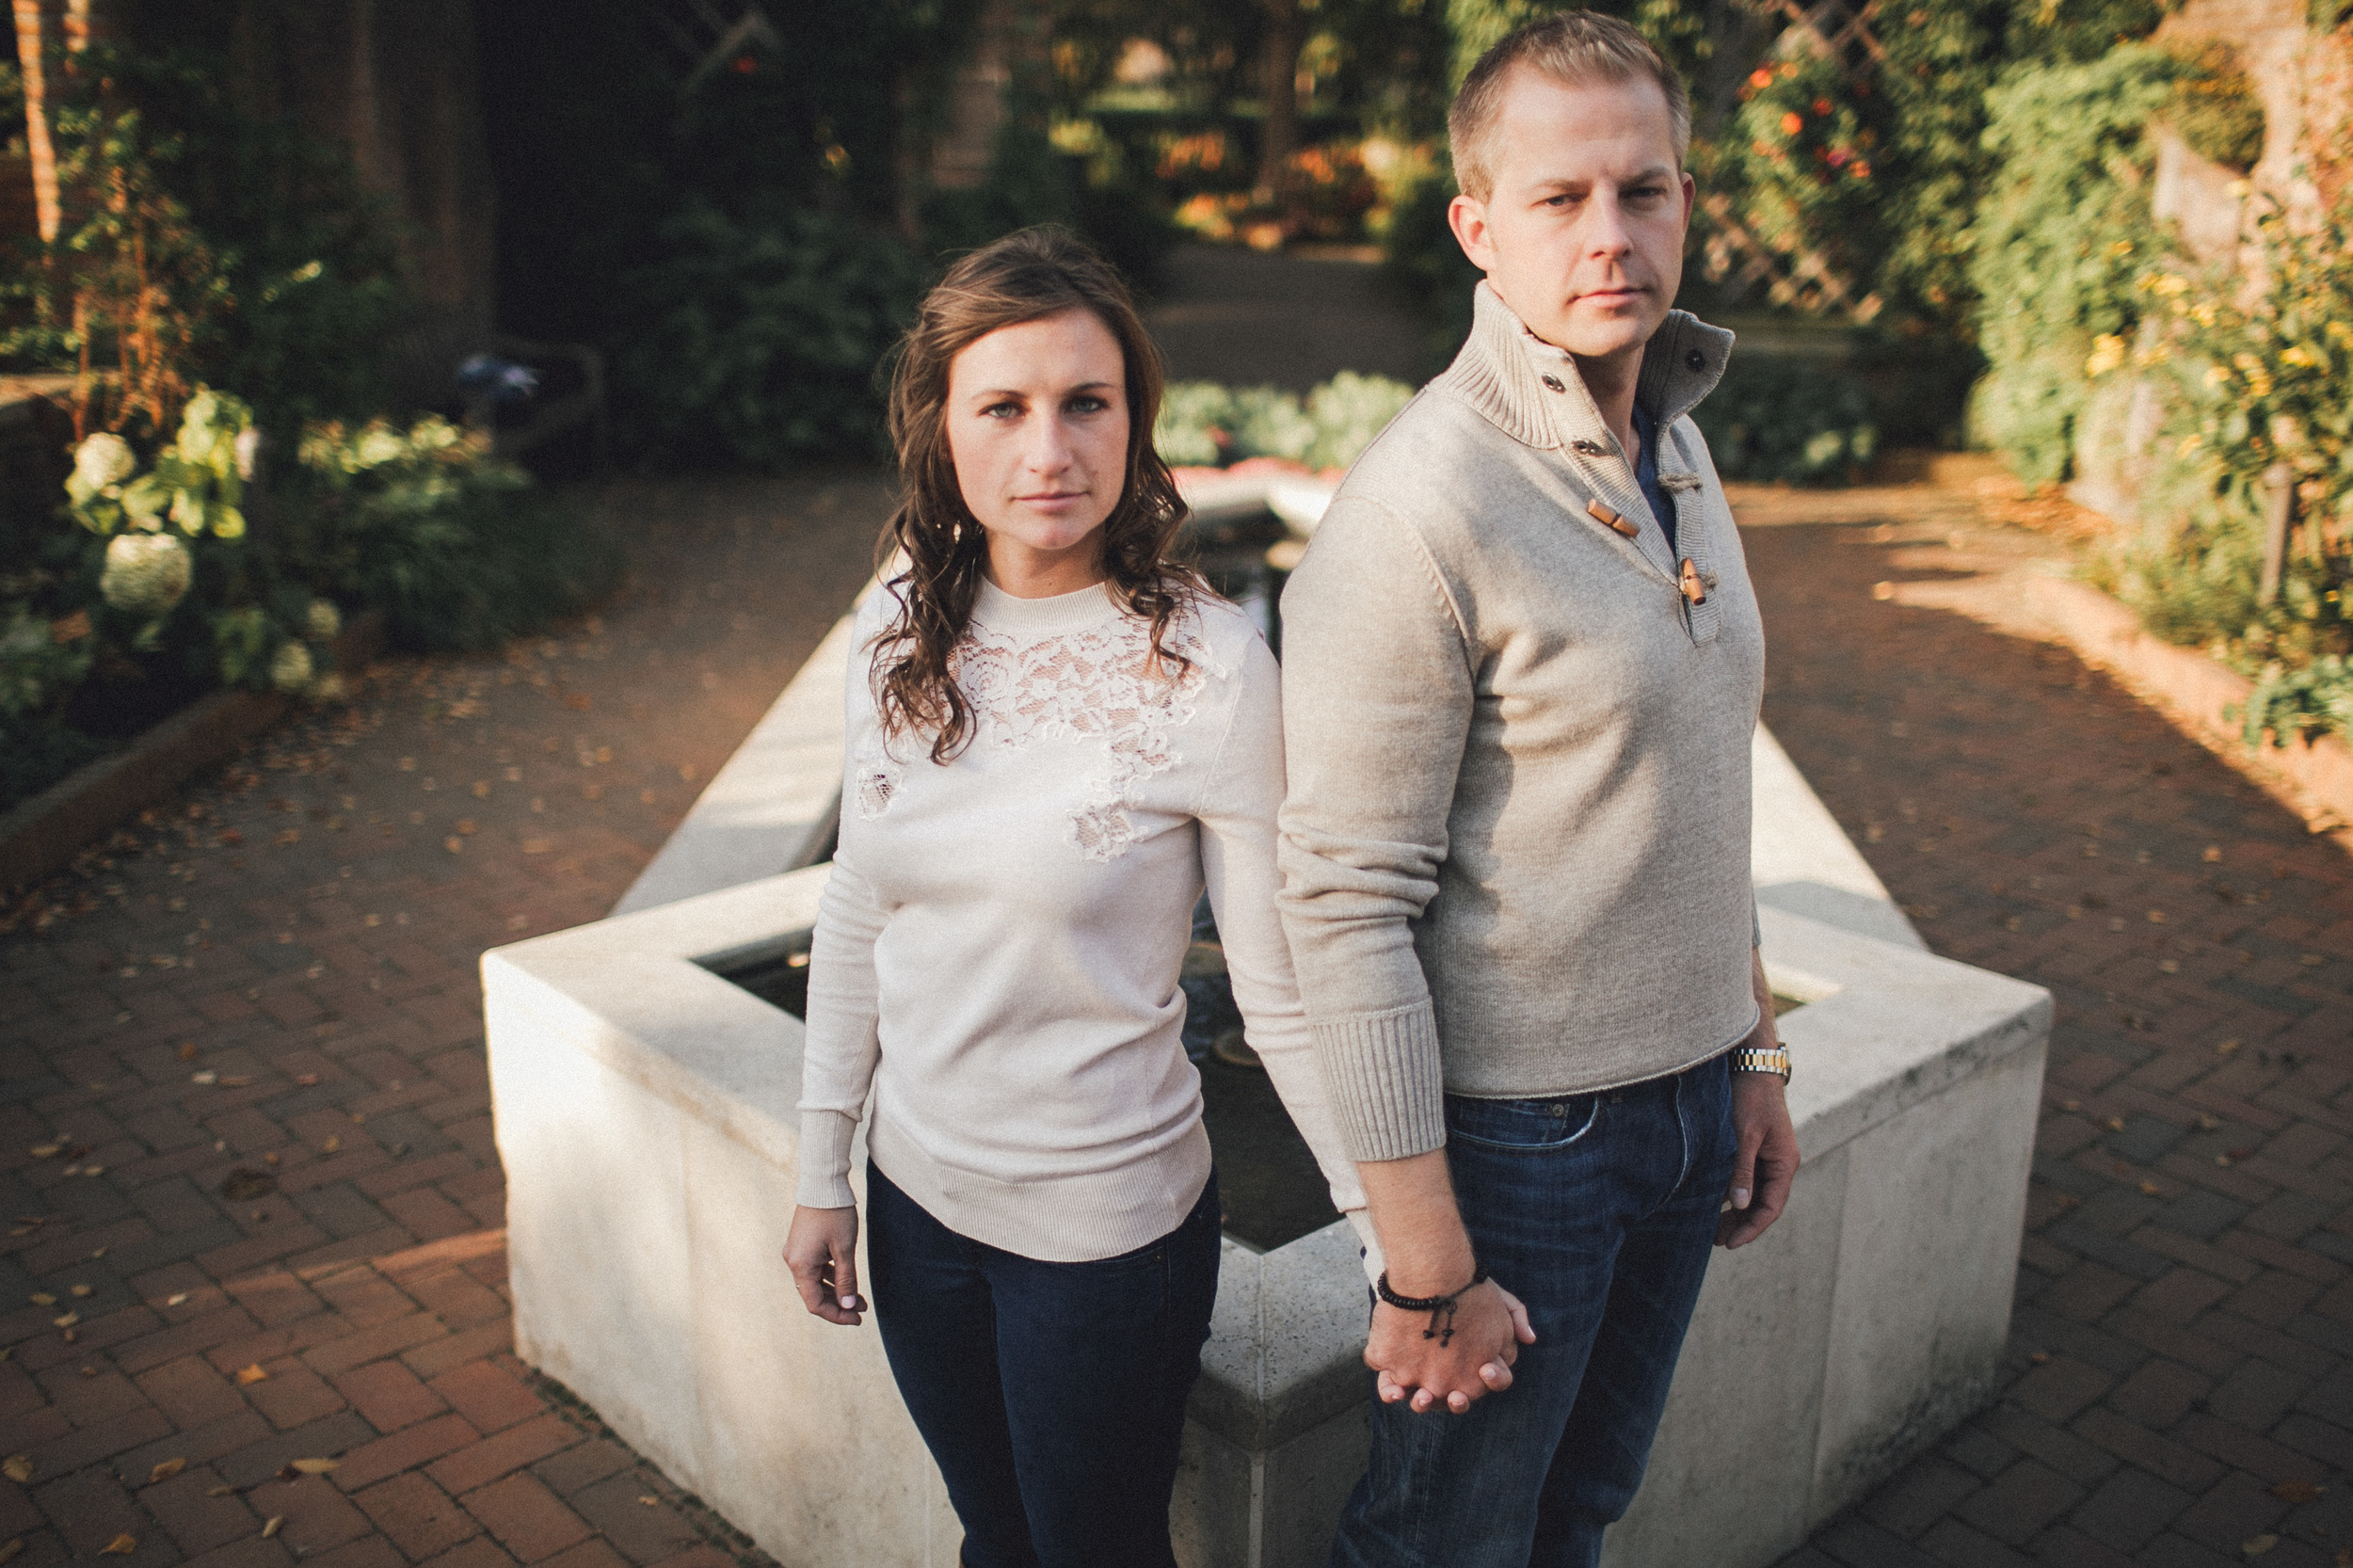 mayden photography_chicago botanical gardens engagement photo-27.jpg